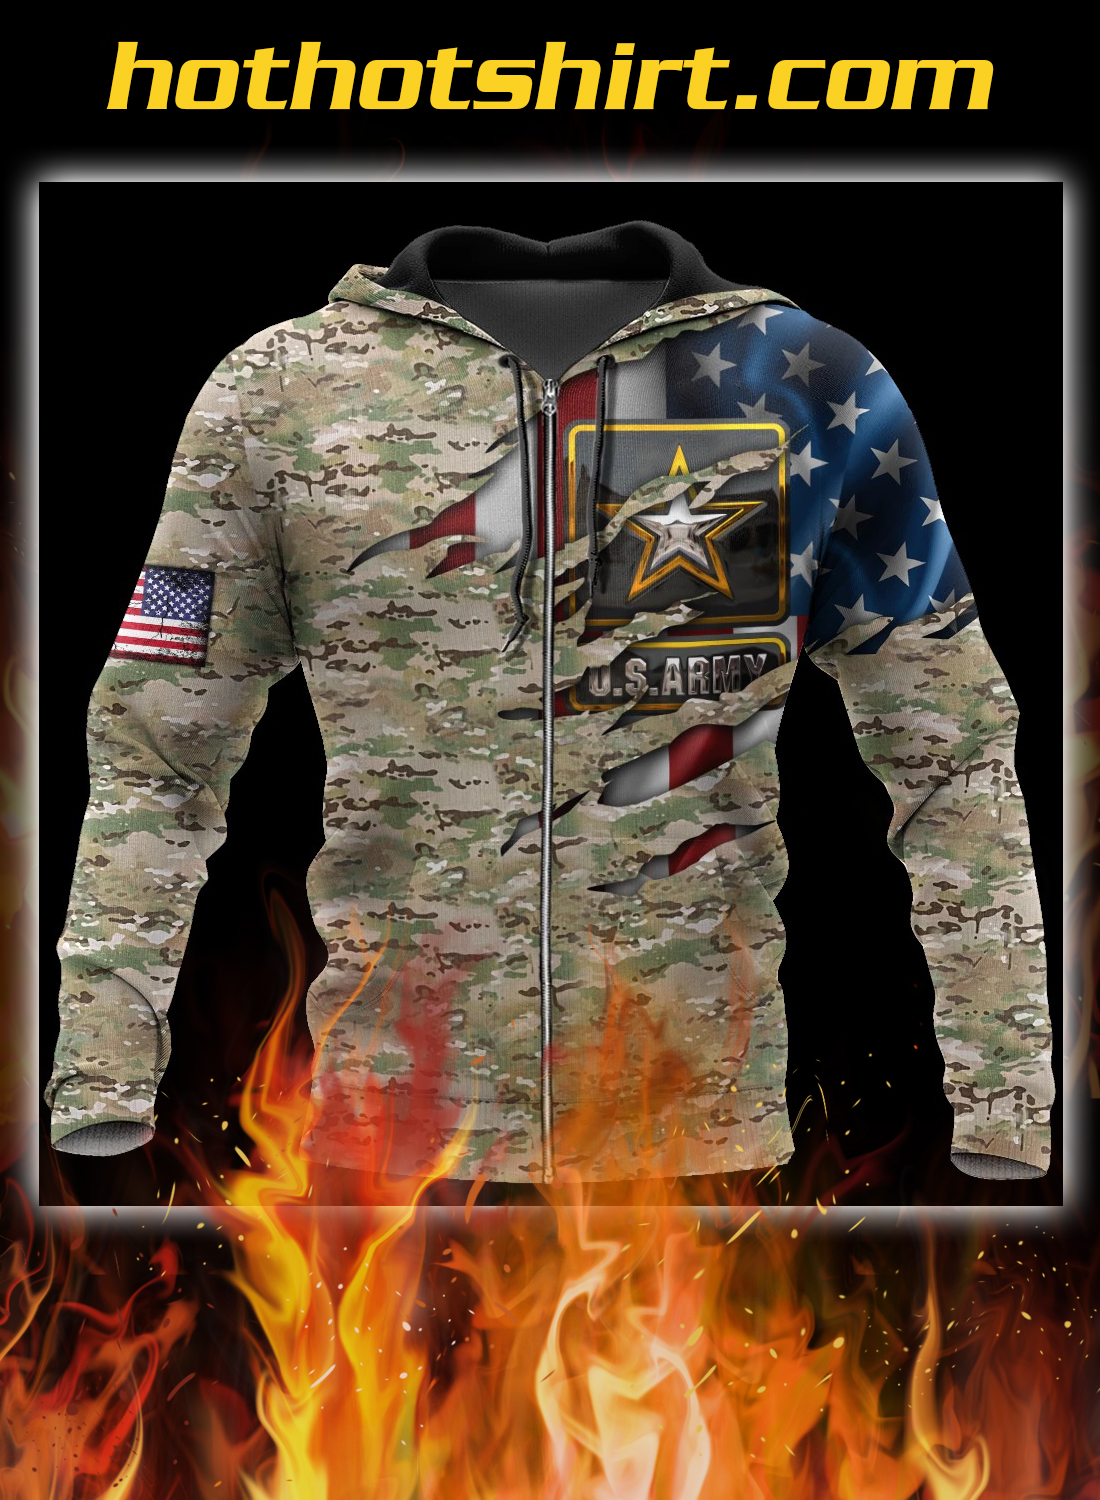 Us army veteran camo american flag 3d all over printed zip hoodie